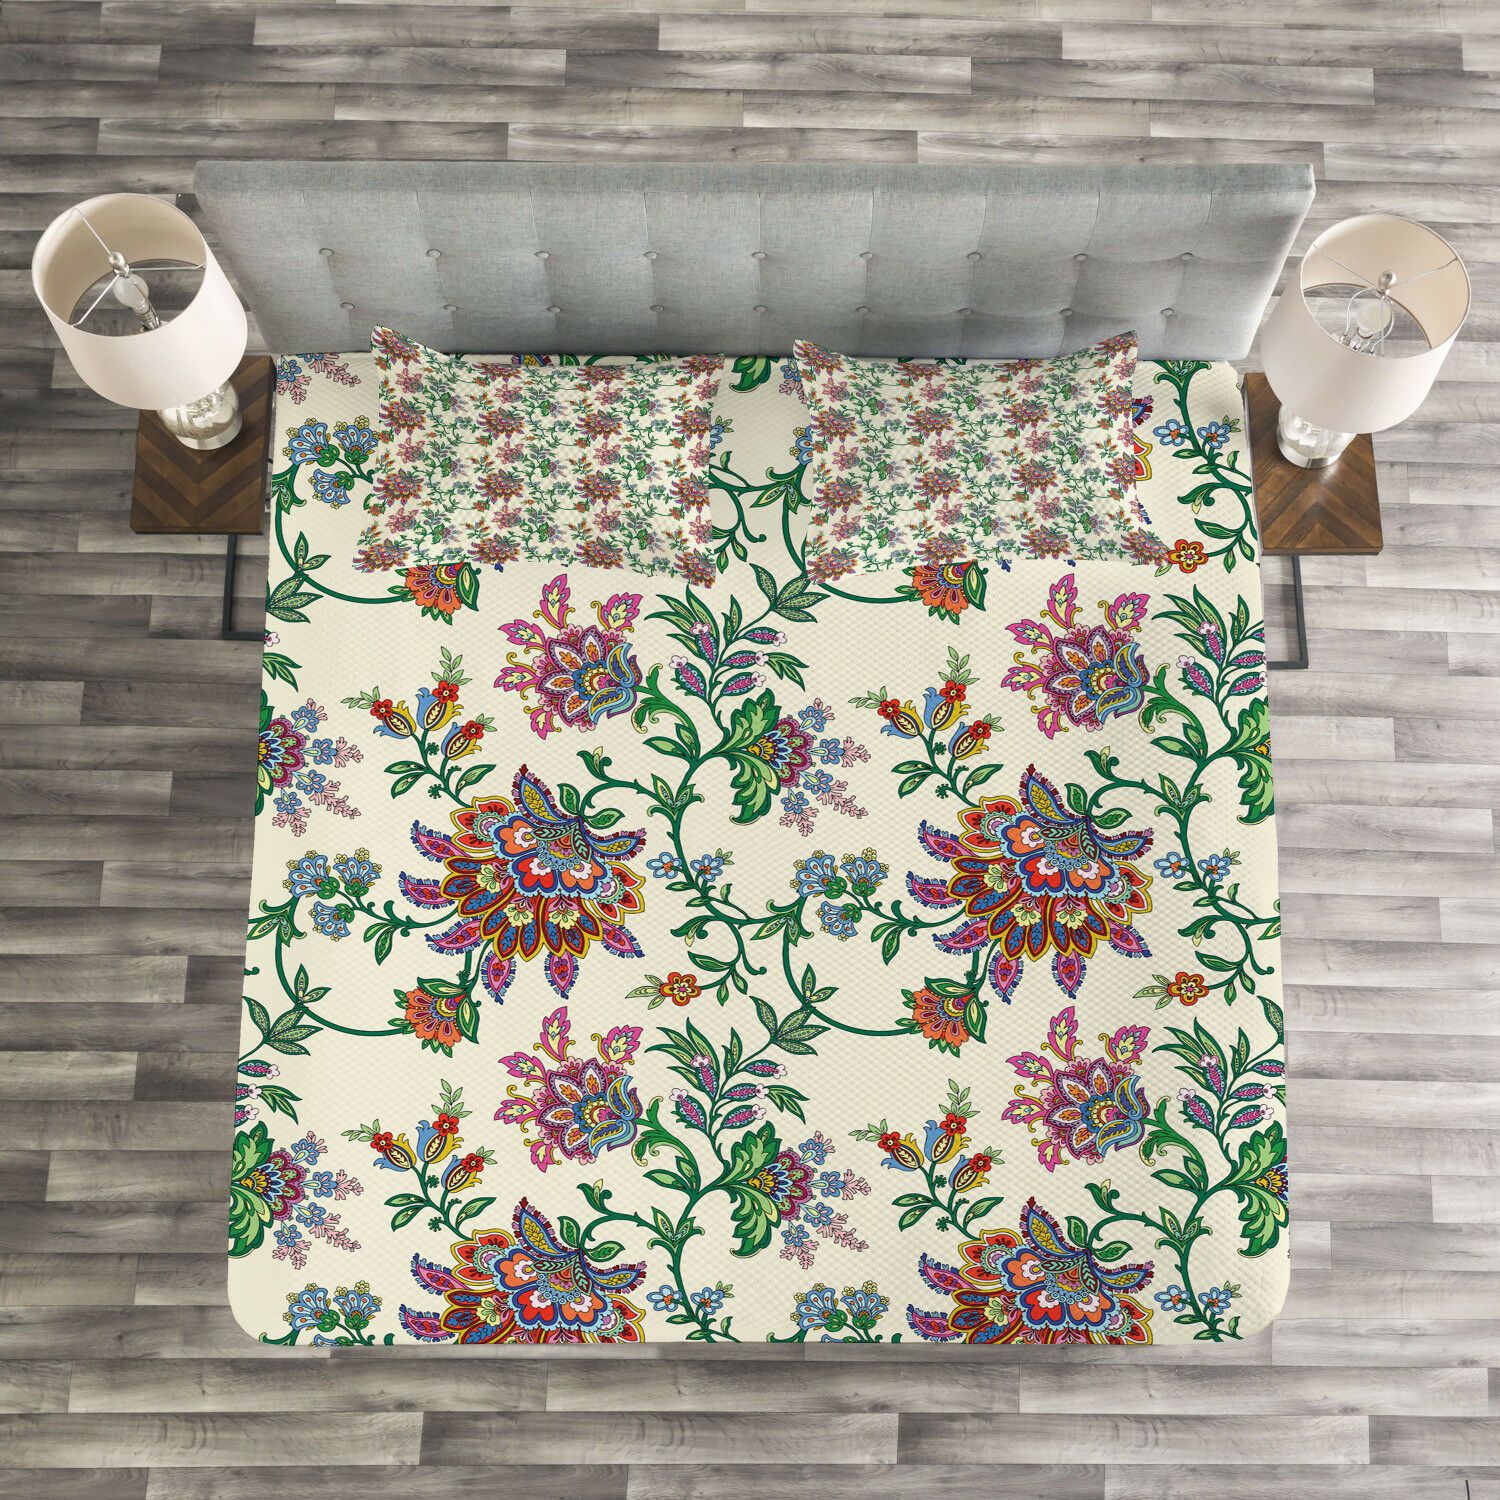 Bohemian Quilted Bedspread & Pillow Shams Set, Coloreeful Ethnic Flowers Print